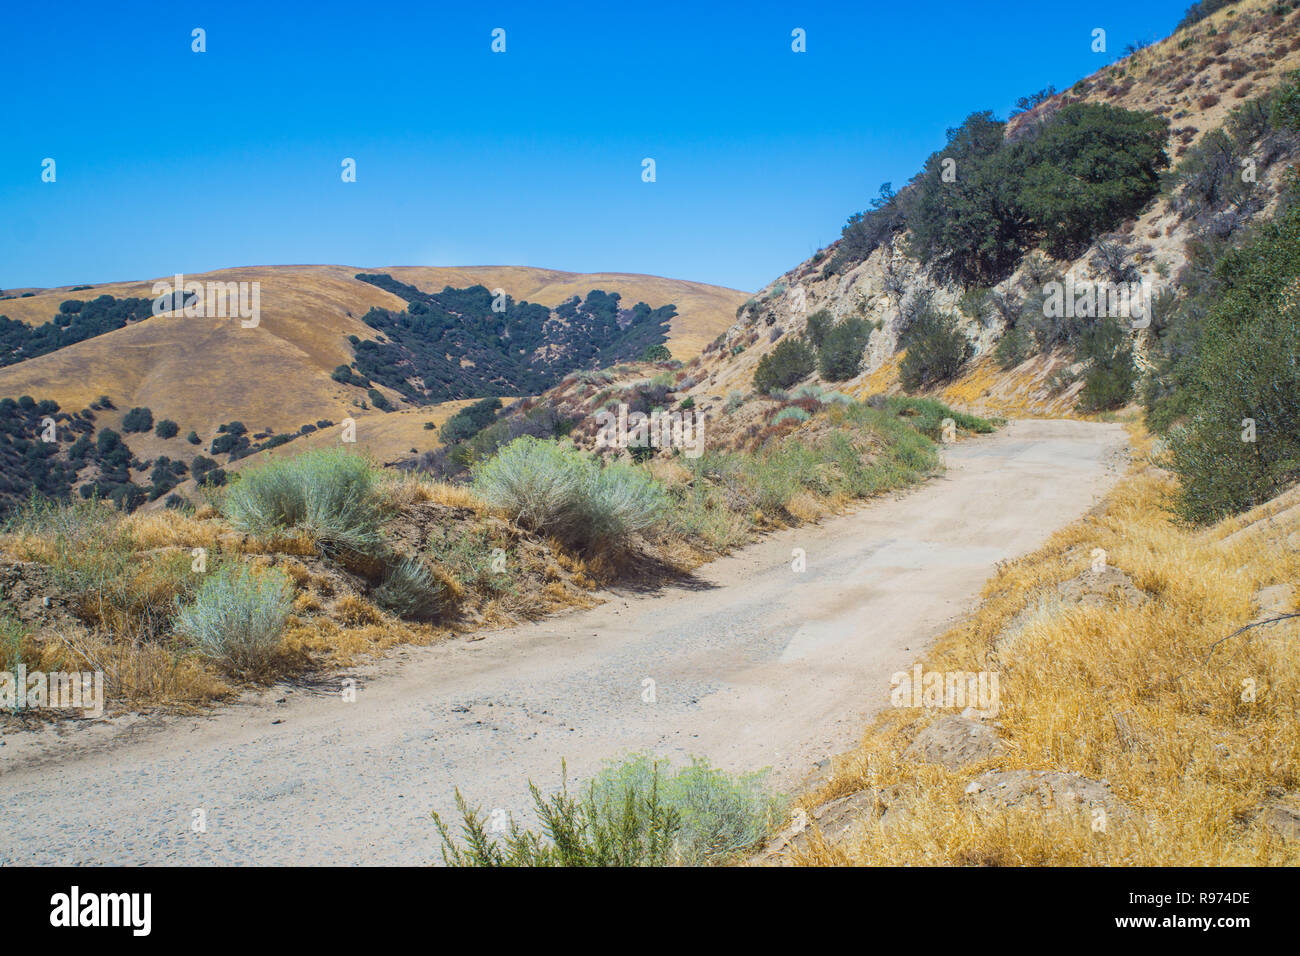 Dirt and gravel road leading through the mountain wilderness of southern California outside Los Angeles. - Stock Image